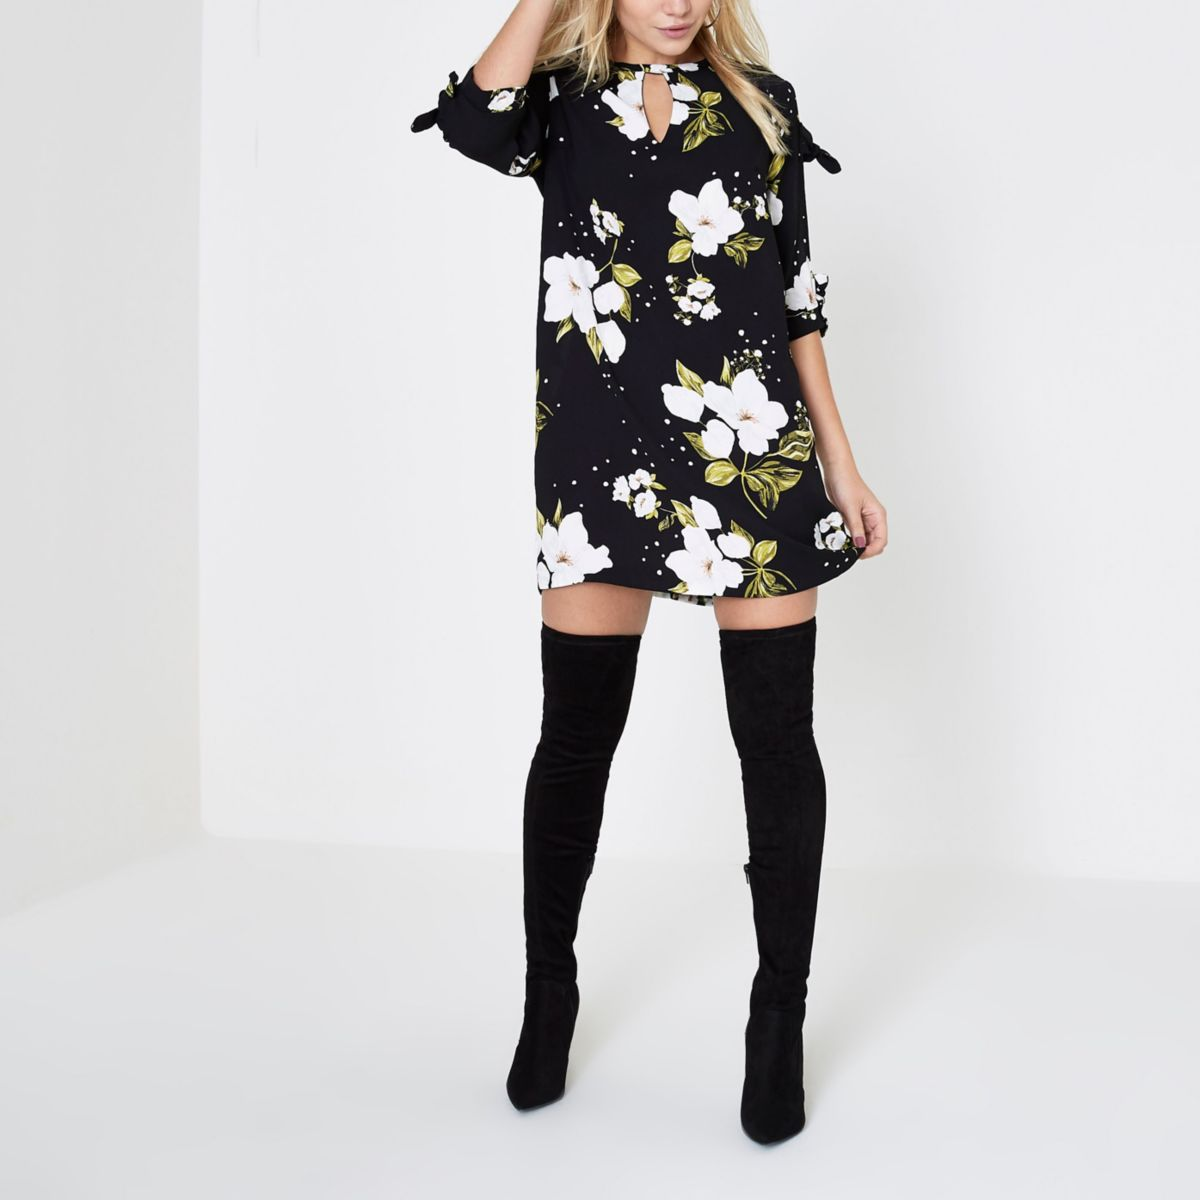 Petite black floral bow sleeve shift dress